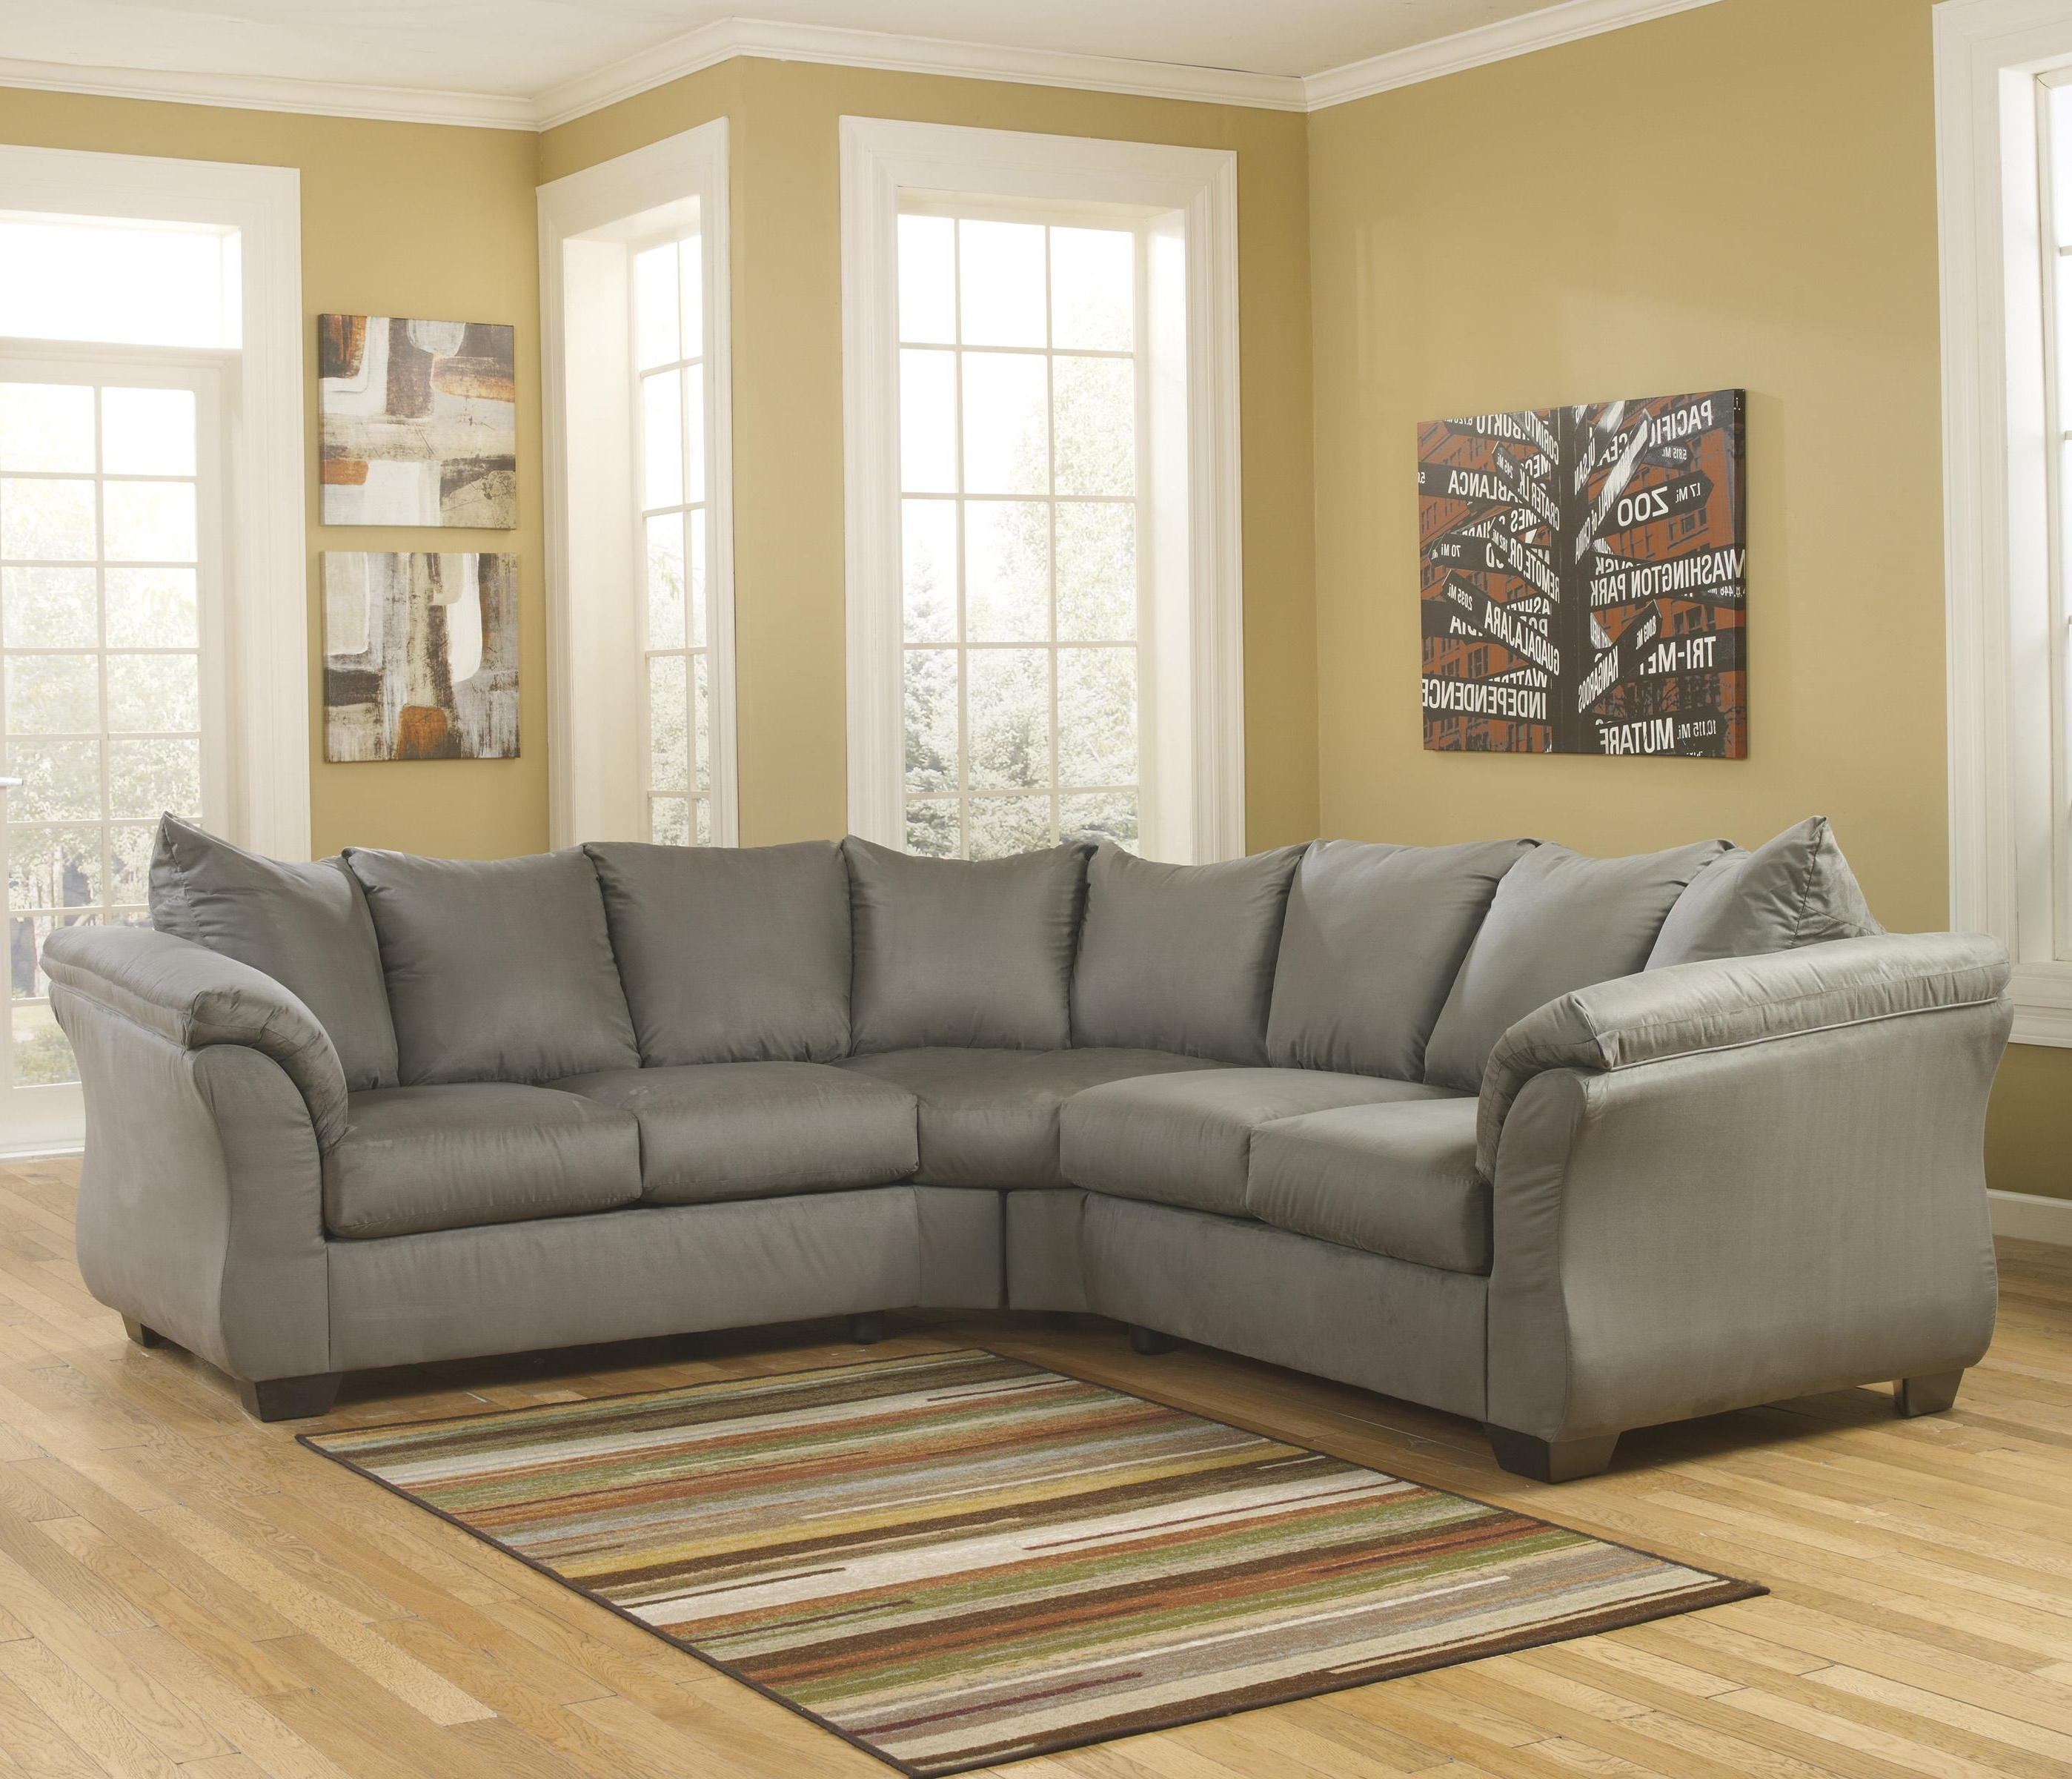 Favorite Green Bay Wi Sectional Sofas In Darcy – Cobblestone Sectional Sofasignature Designashley (View 6 of 15)